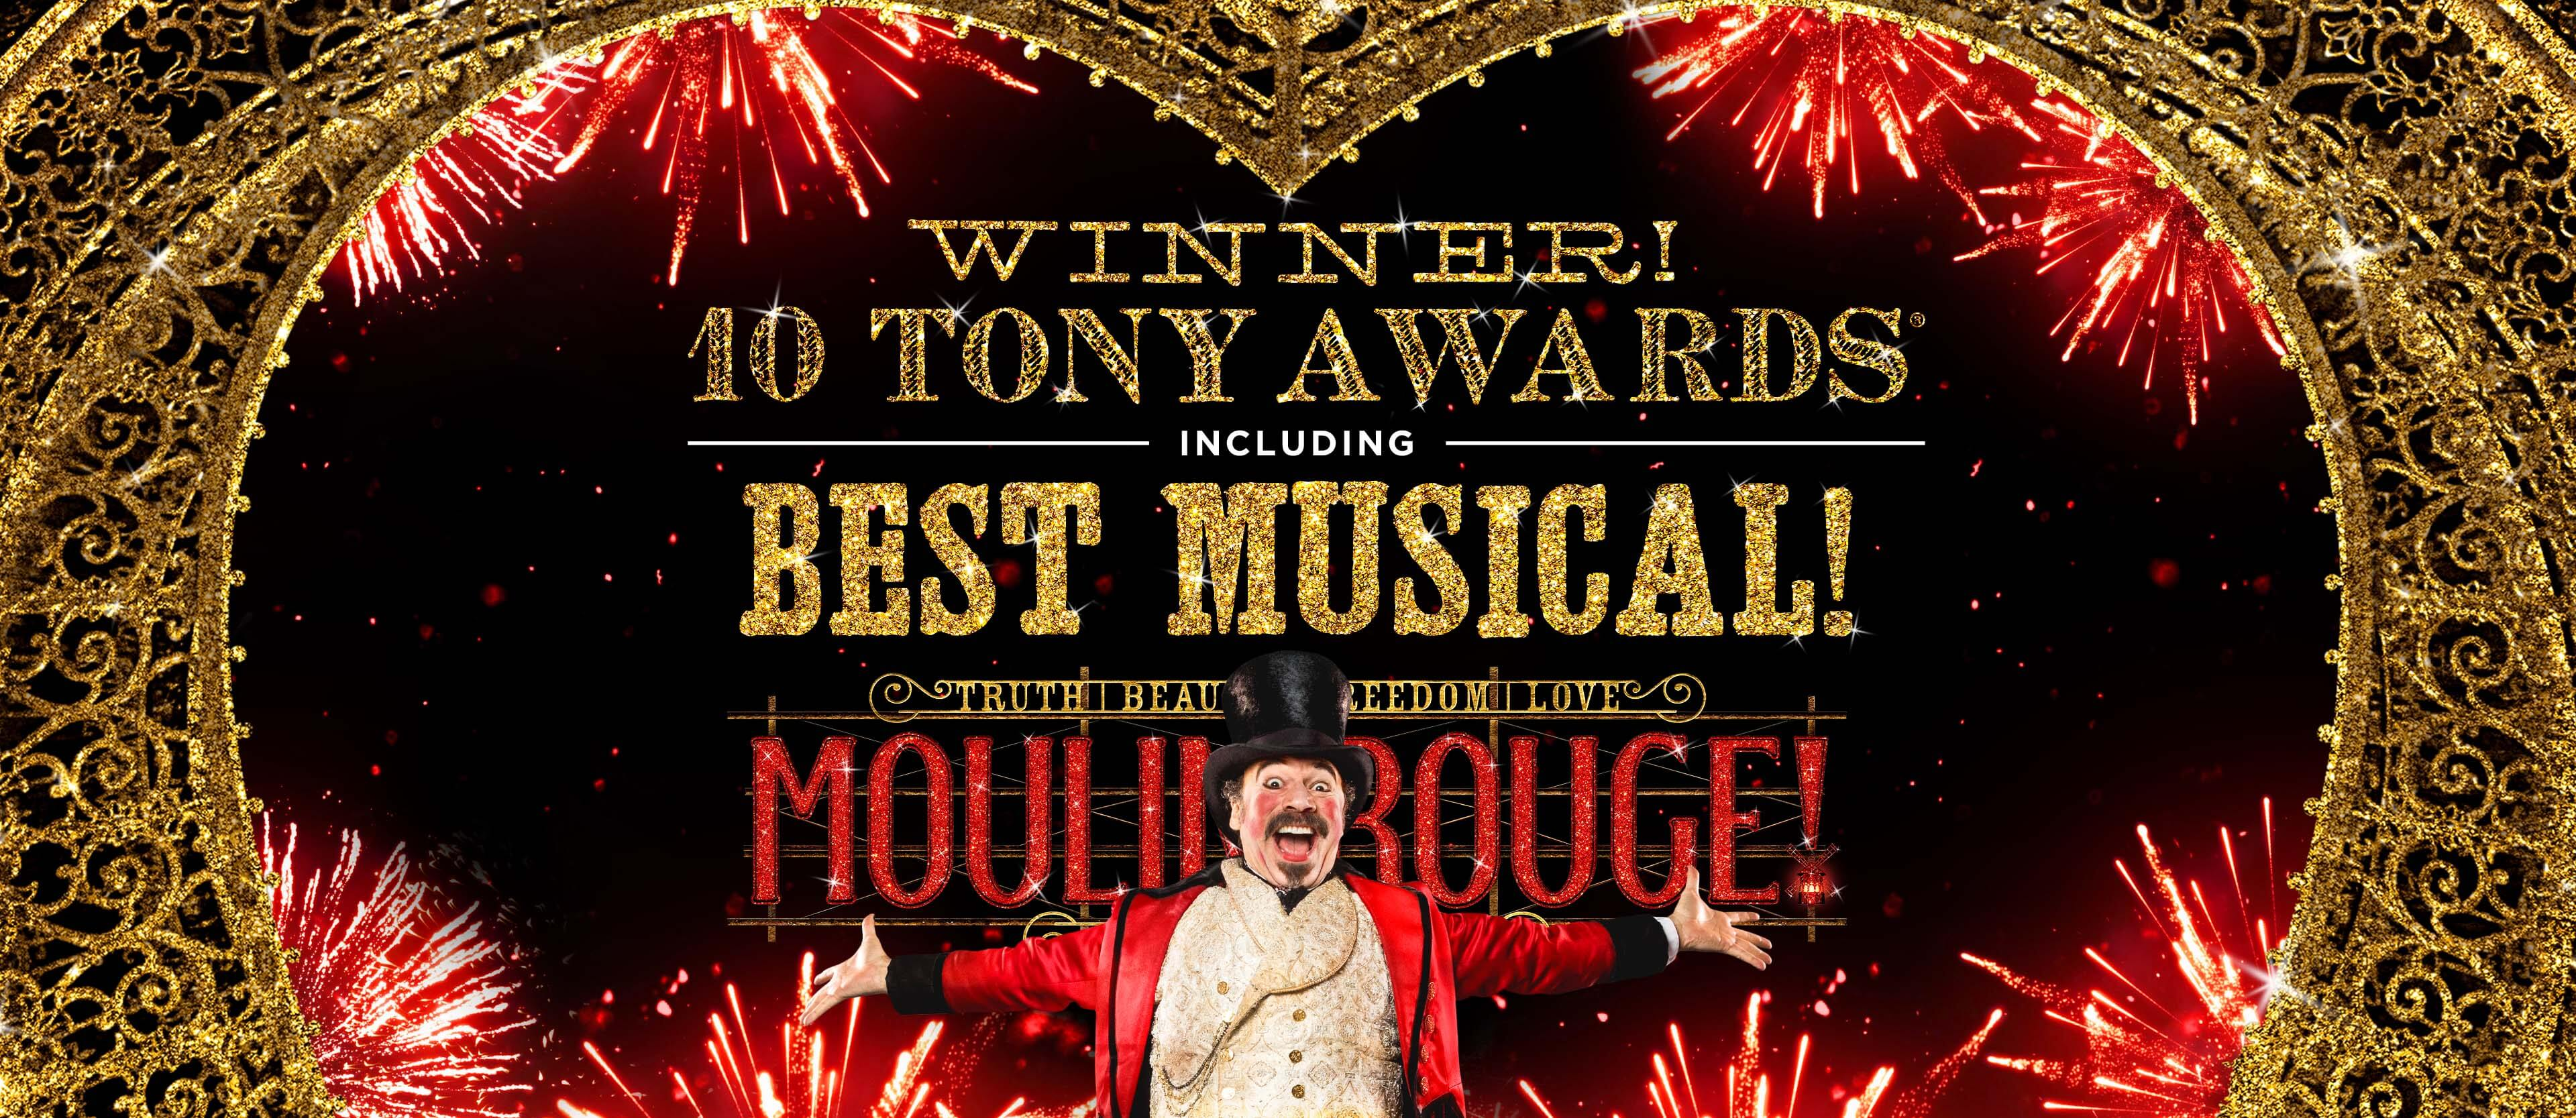 Moulin Rouge The Musical 14 Tony Award Nominations!